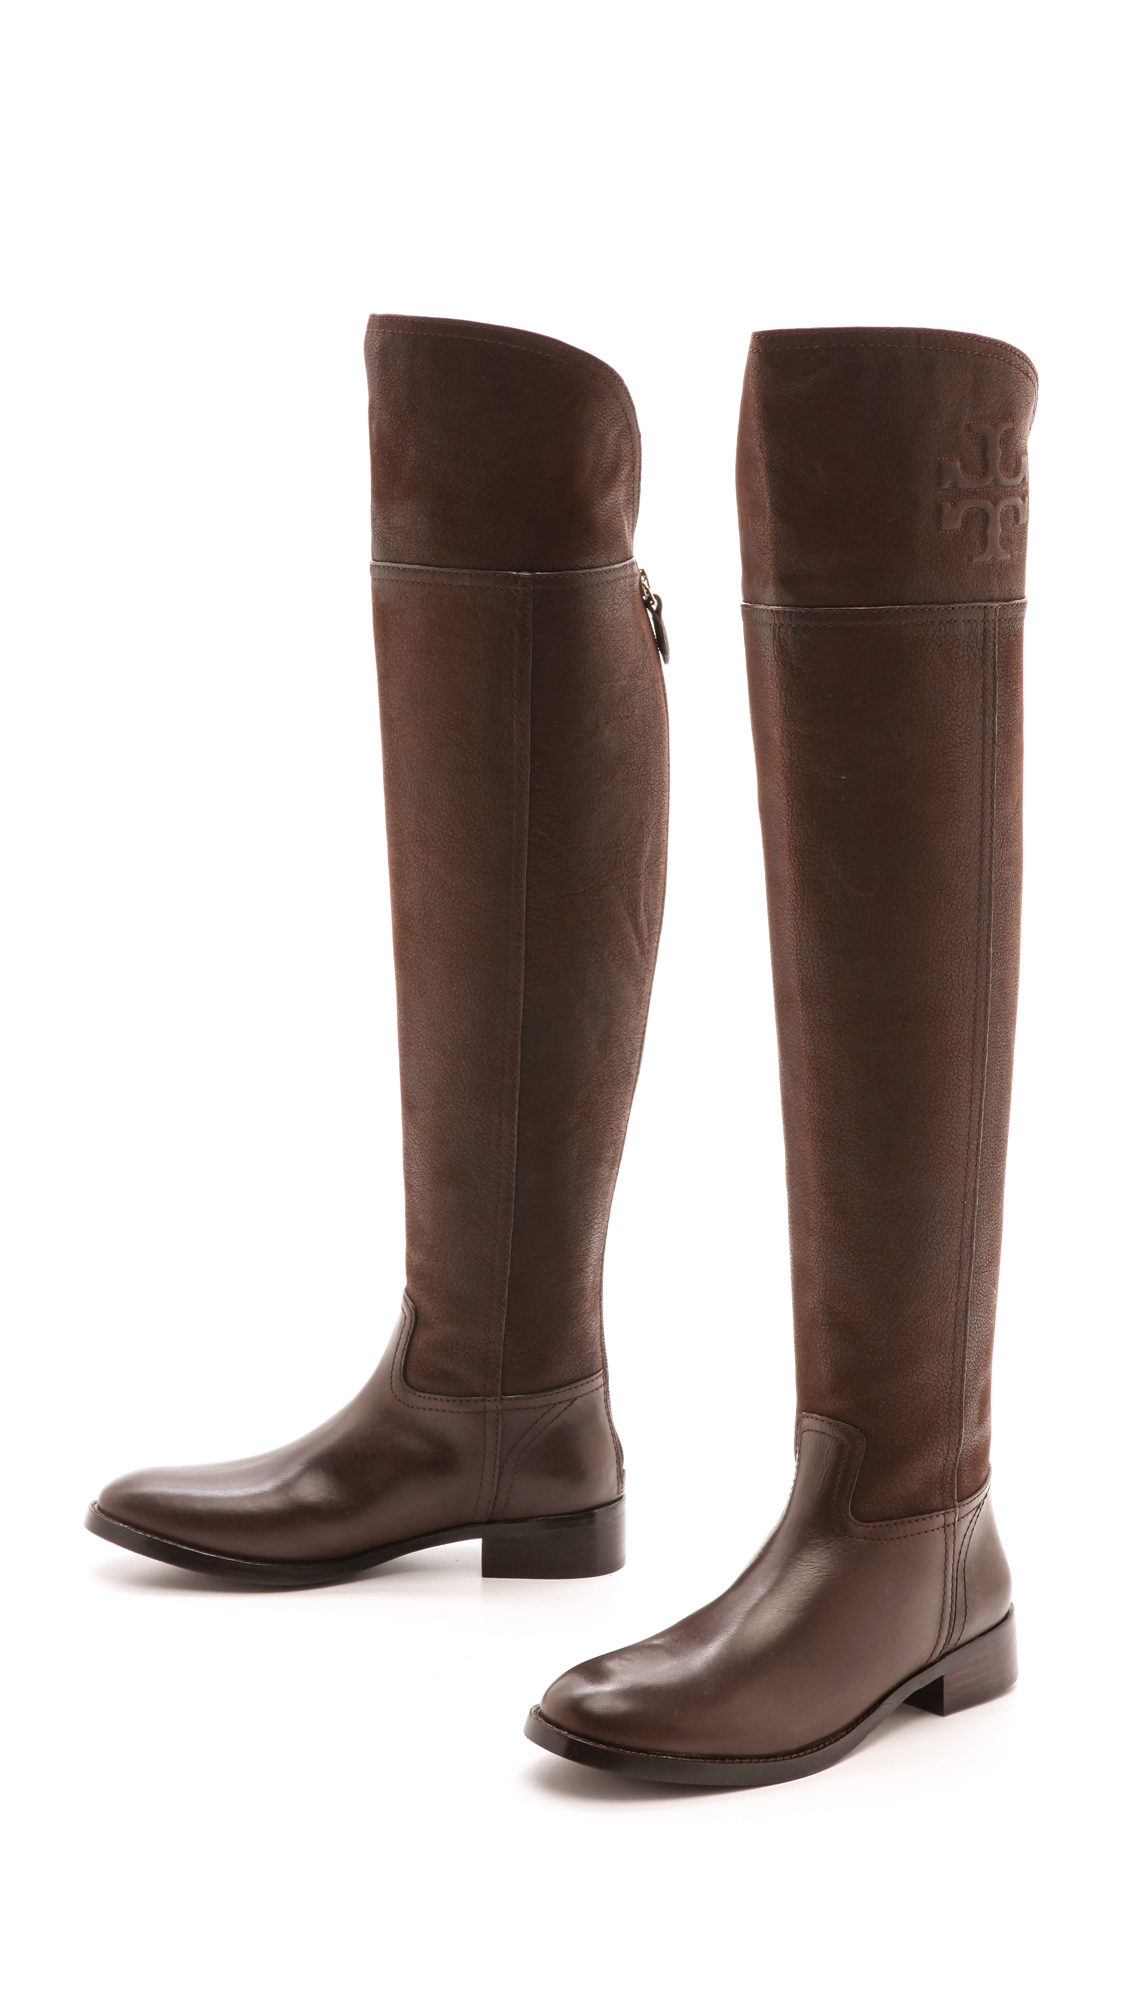 91c396422d91 Tory Burch Simone Over the Knee Flat Boots